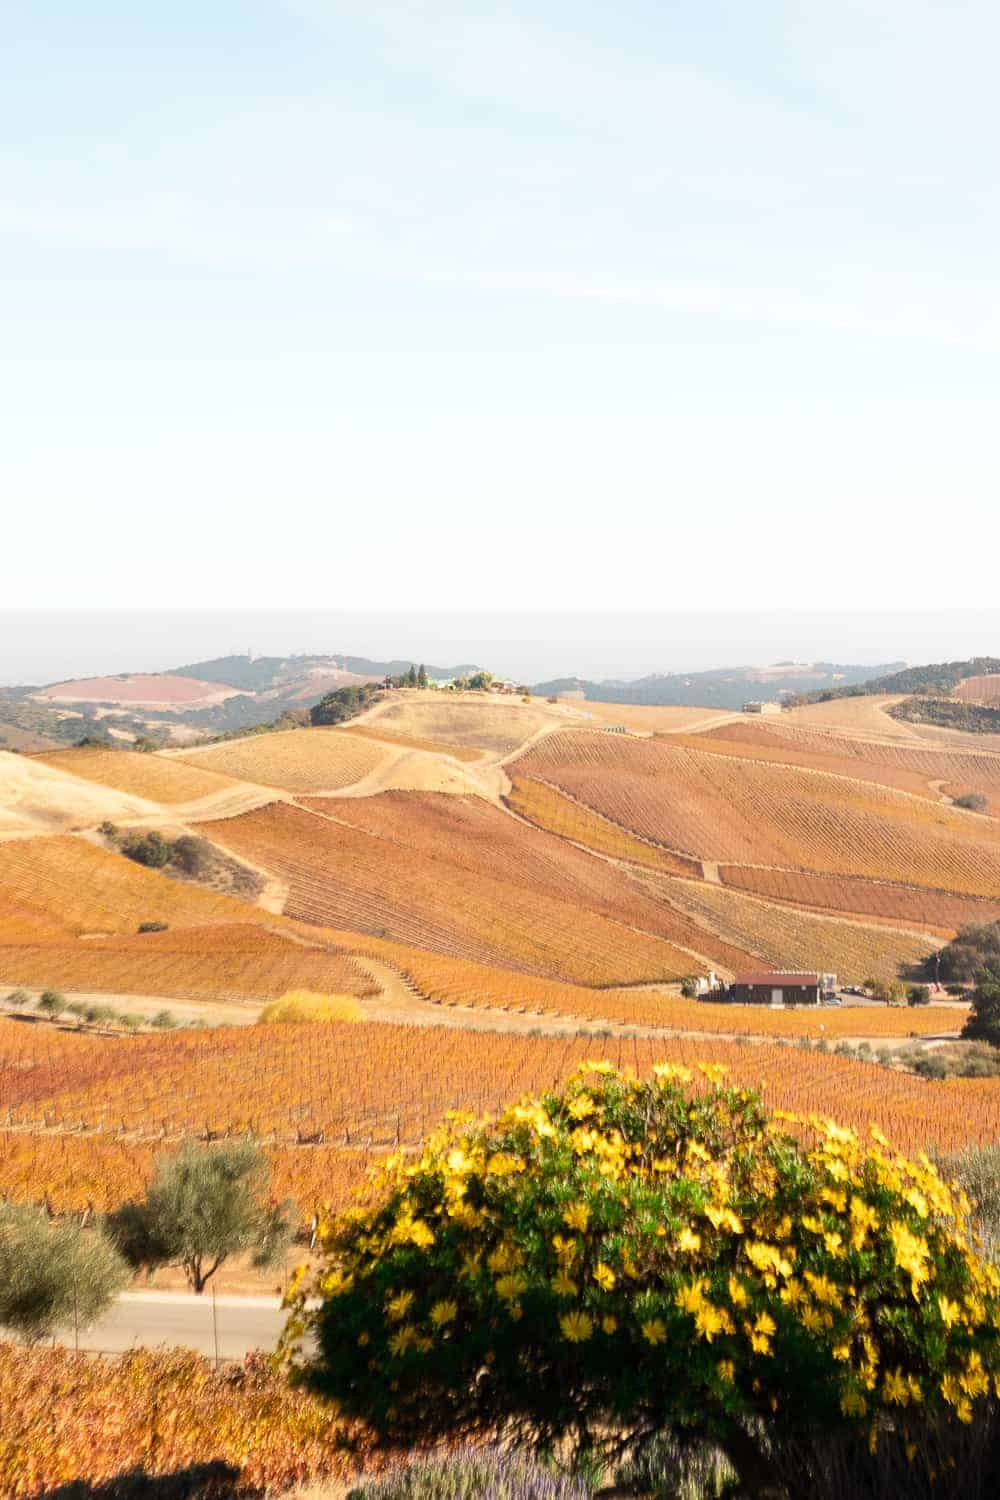 orange and yellow vineyards